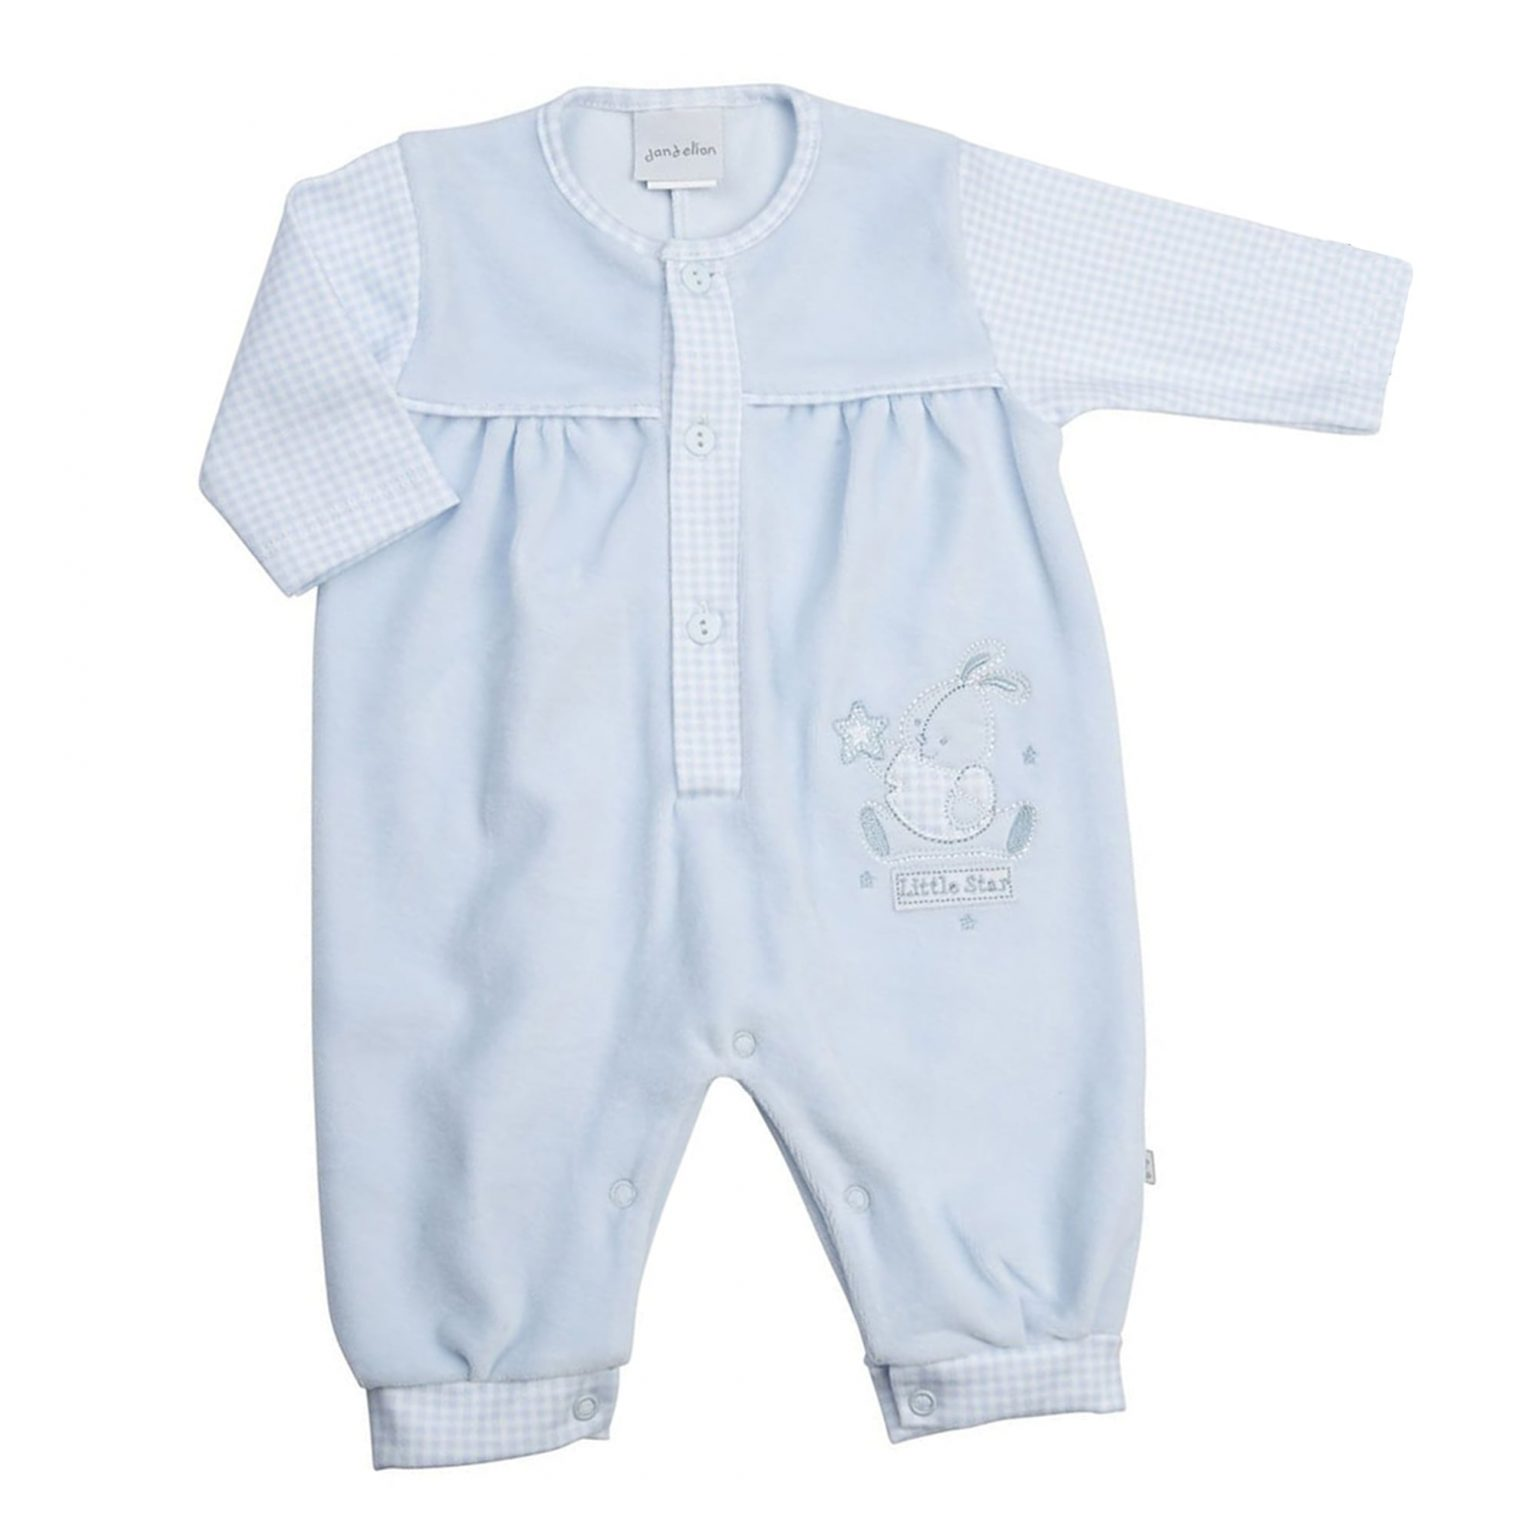 Little star bunny romper Mary Shortle